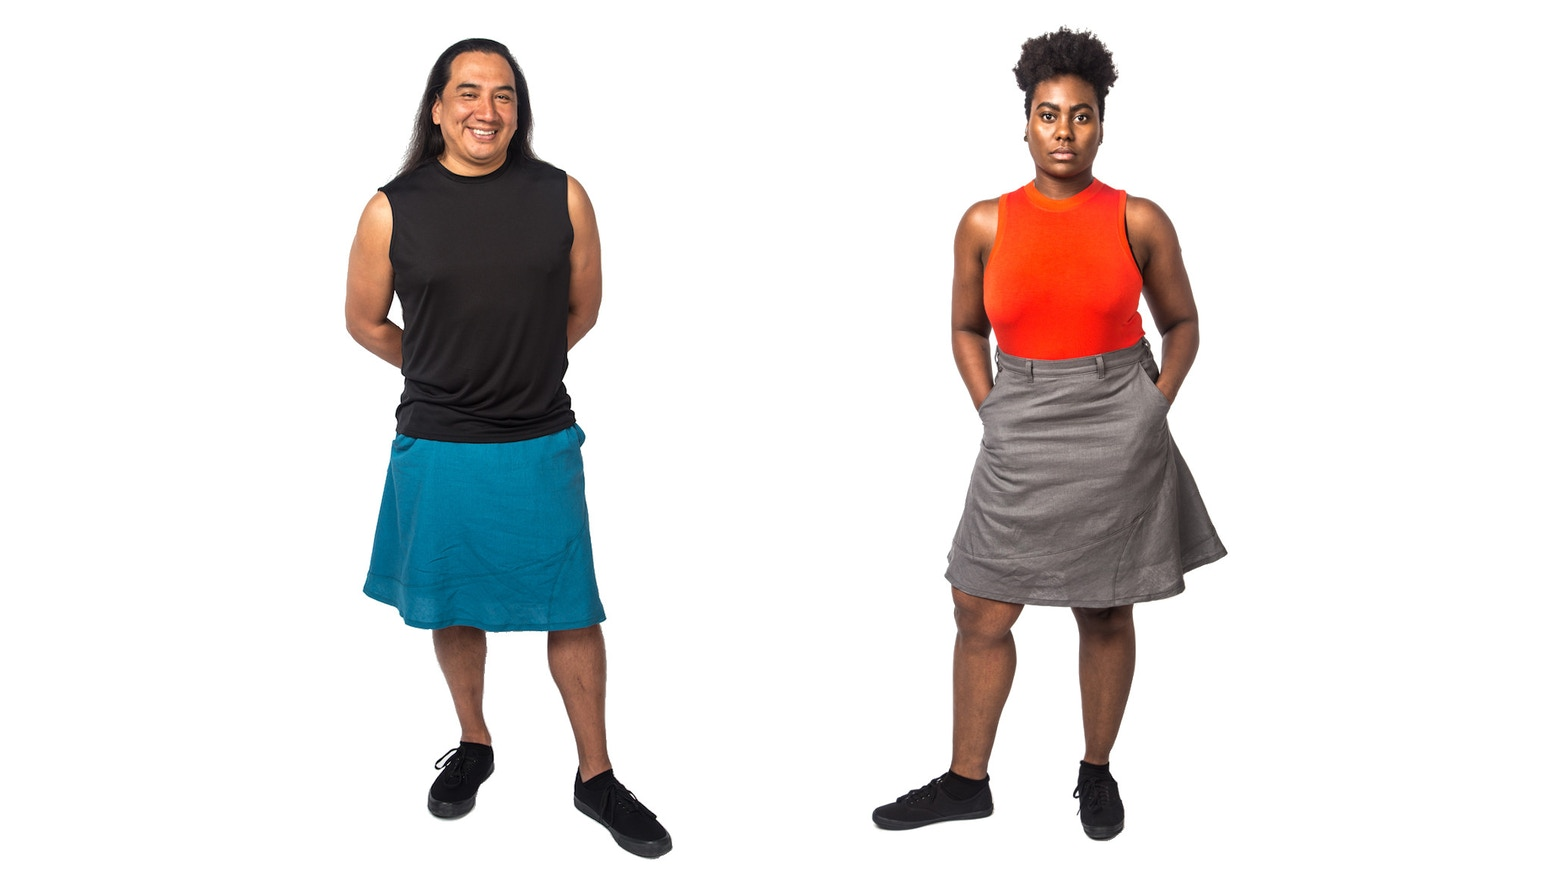 Large pockets. Substantial weight. Fluid drape. Spiralling seams. Made in the USA, for anyone.